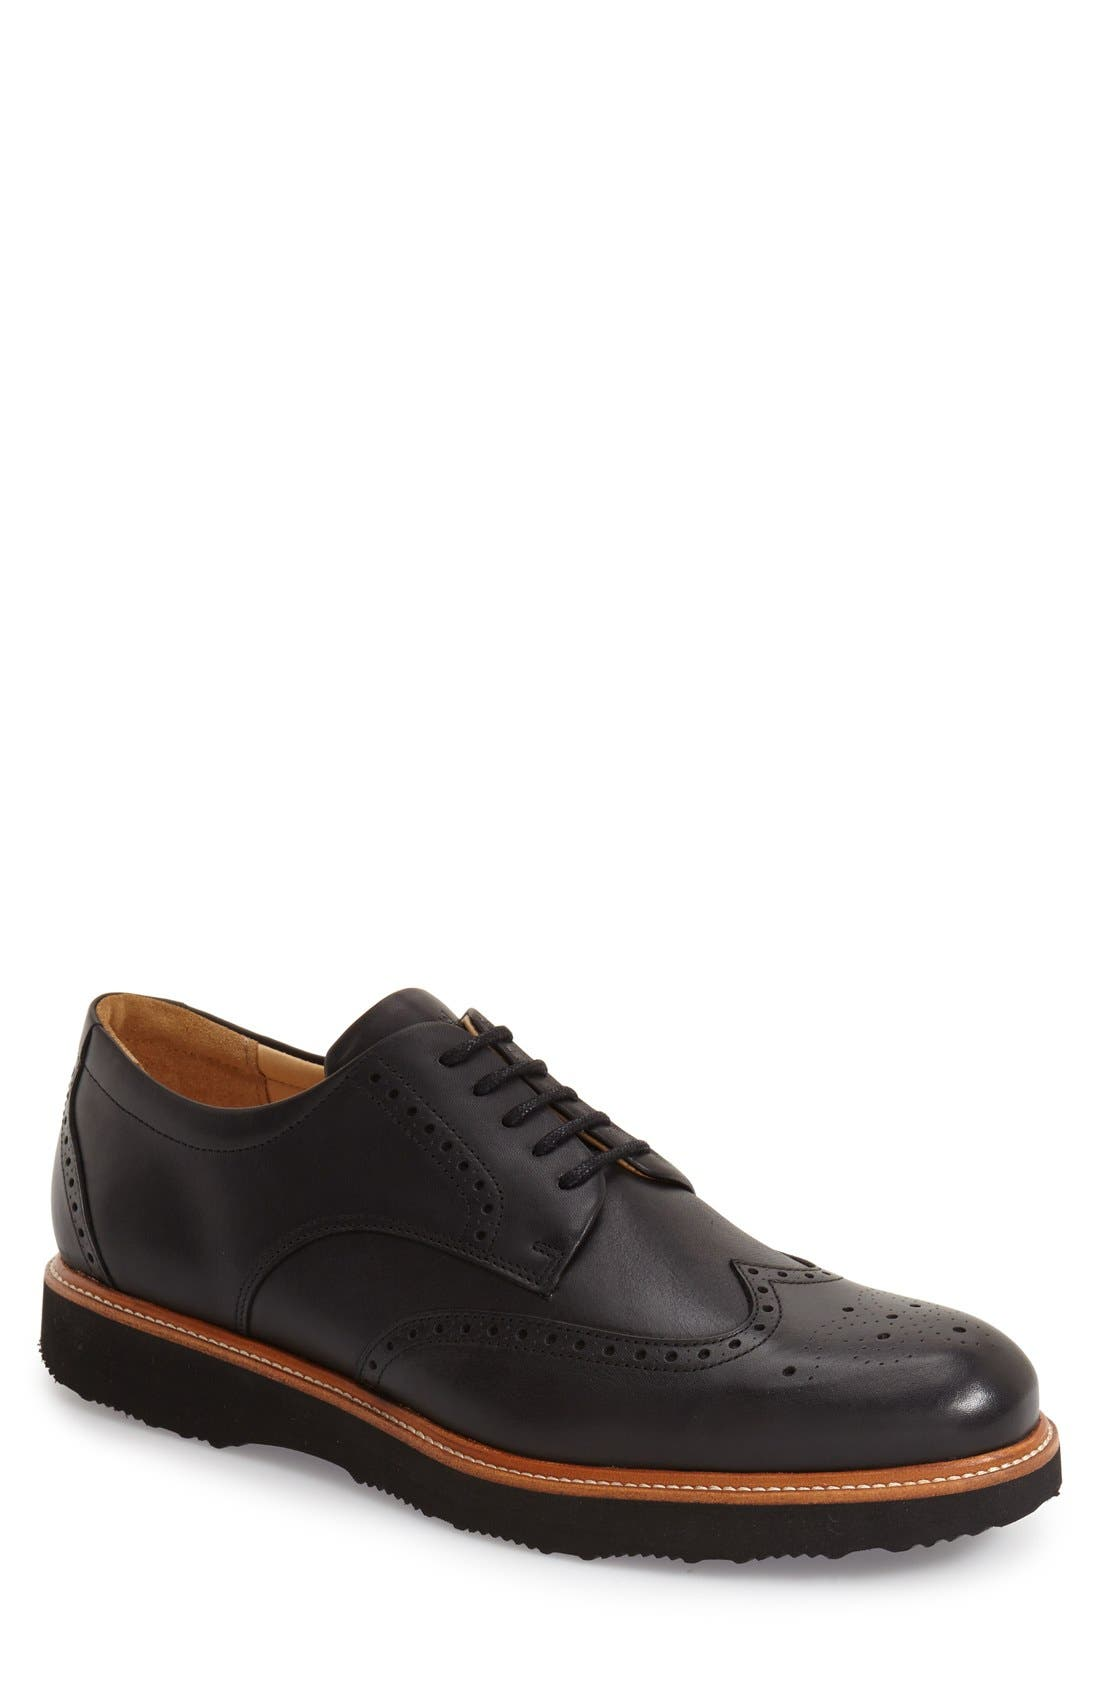 SAMUEL HUBBARD 'Tipping Point' Wingtip Oxford, Main, color, BLACK